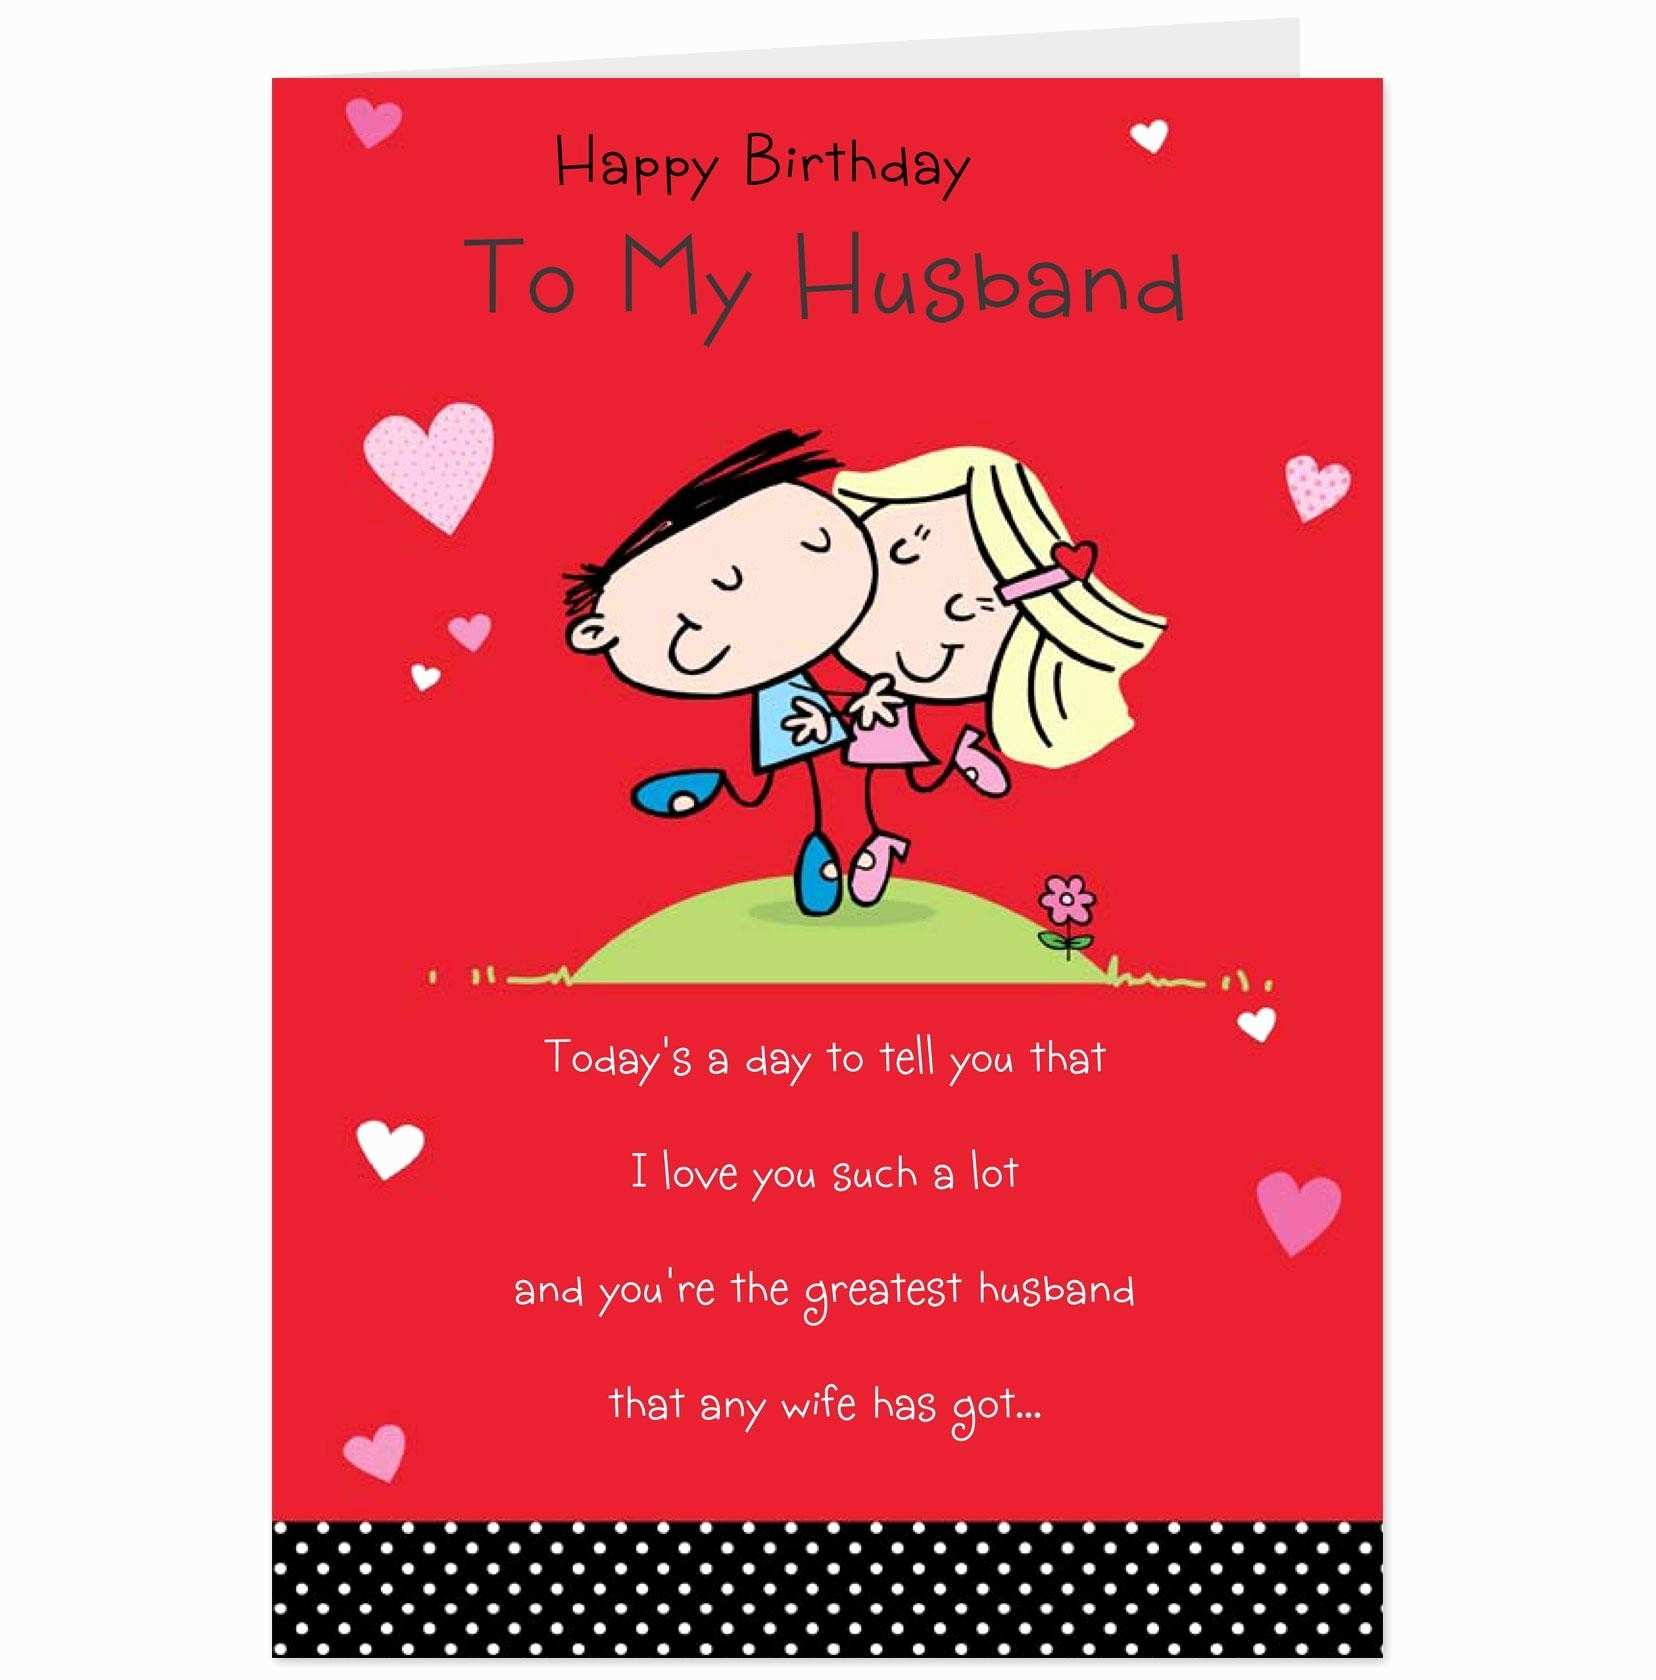 happy birthday husband funny quotes ; happy-birthday-to-my-husband-funny-quotes-unique-happy-birthday-quotes-husband-new-funny-50th-birthday-quotes-and-of-happy-birthday-to-my-husband-funny-quotes